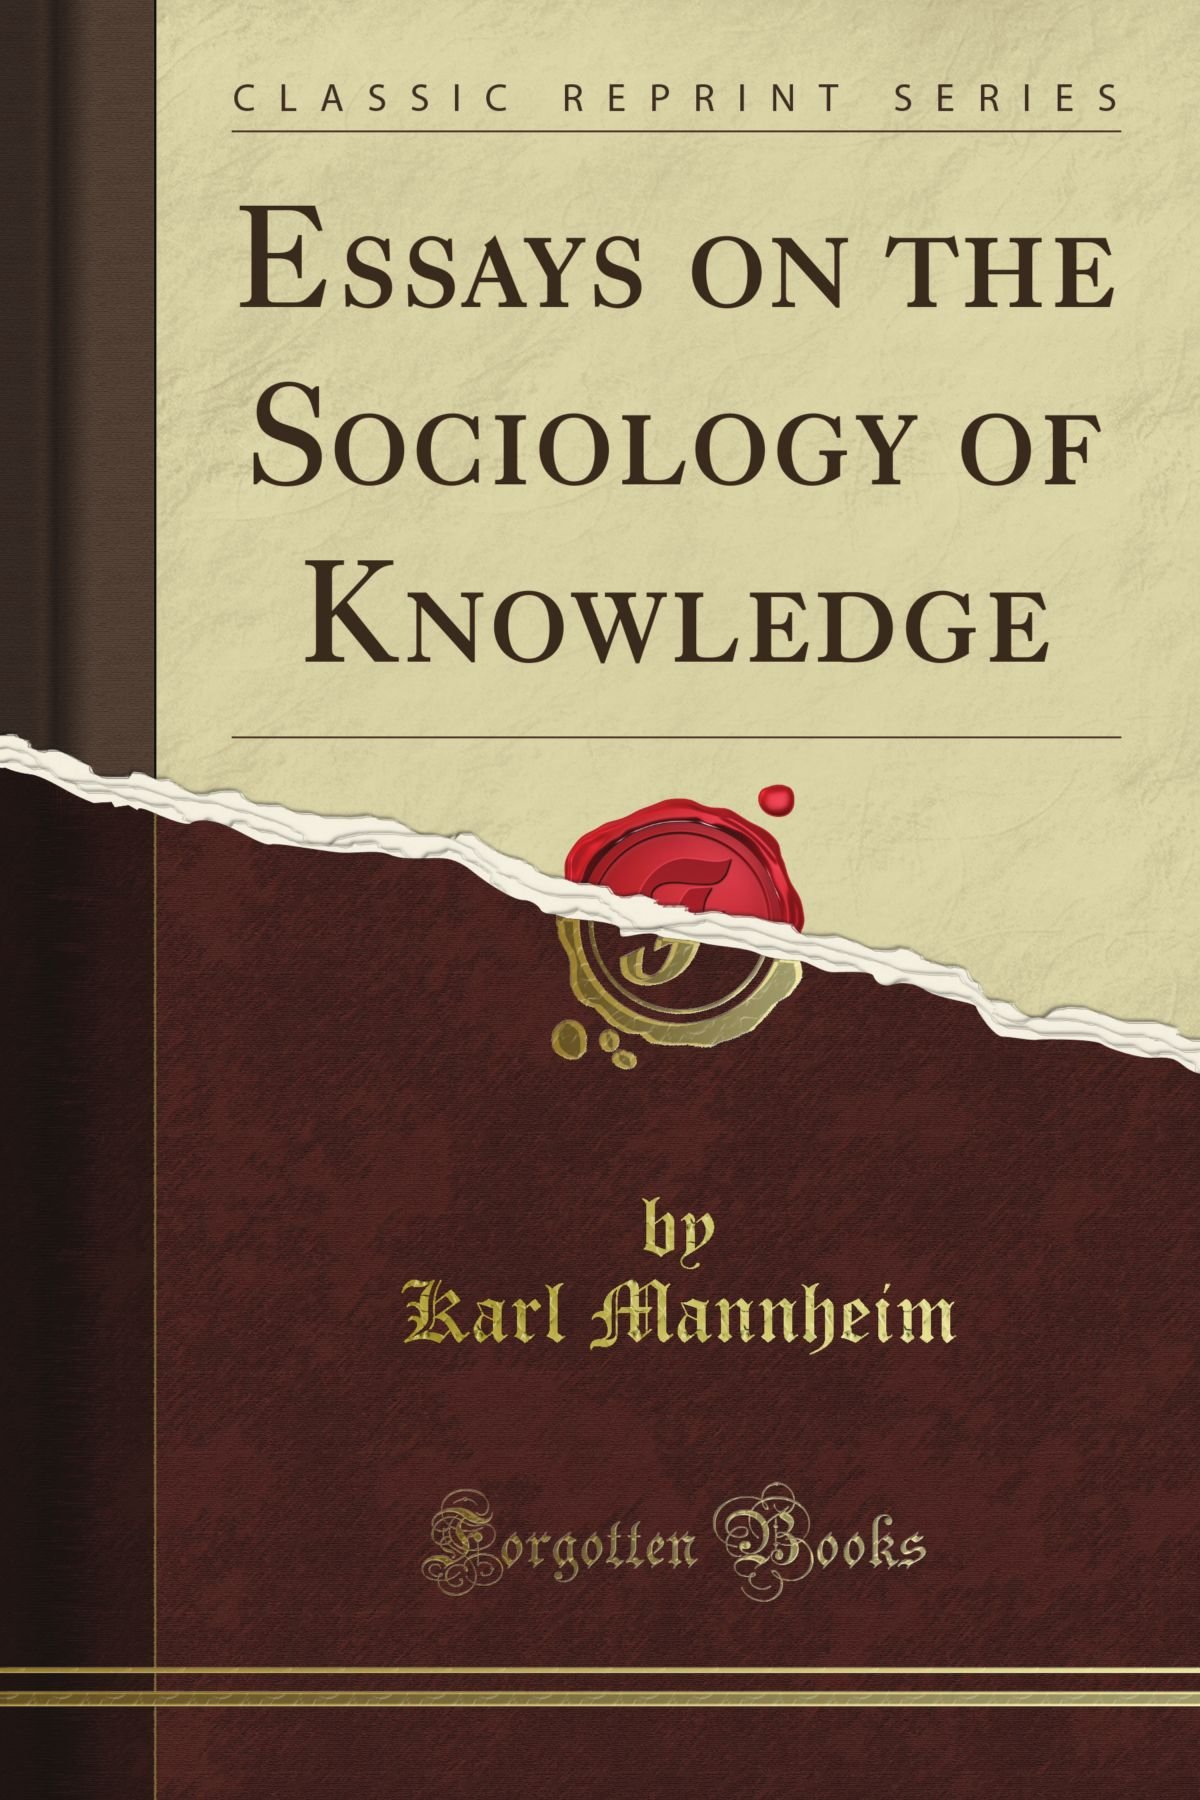 Spm English Essay Amazoncom Essays On The Sociology Of Knowledge Classic Reprint Karl  Mannheim Books Write My Essay Paper also Proposal Essay Topic Amazoncom Essays On The Sociology Of Knowledge Classic Reprint  Essay Health Care